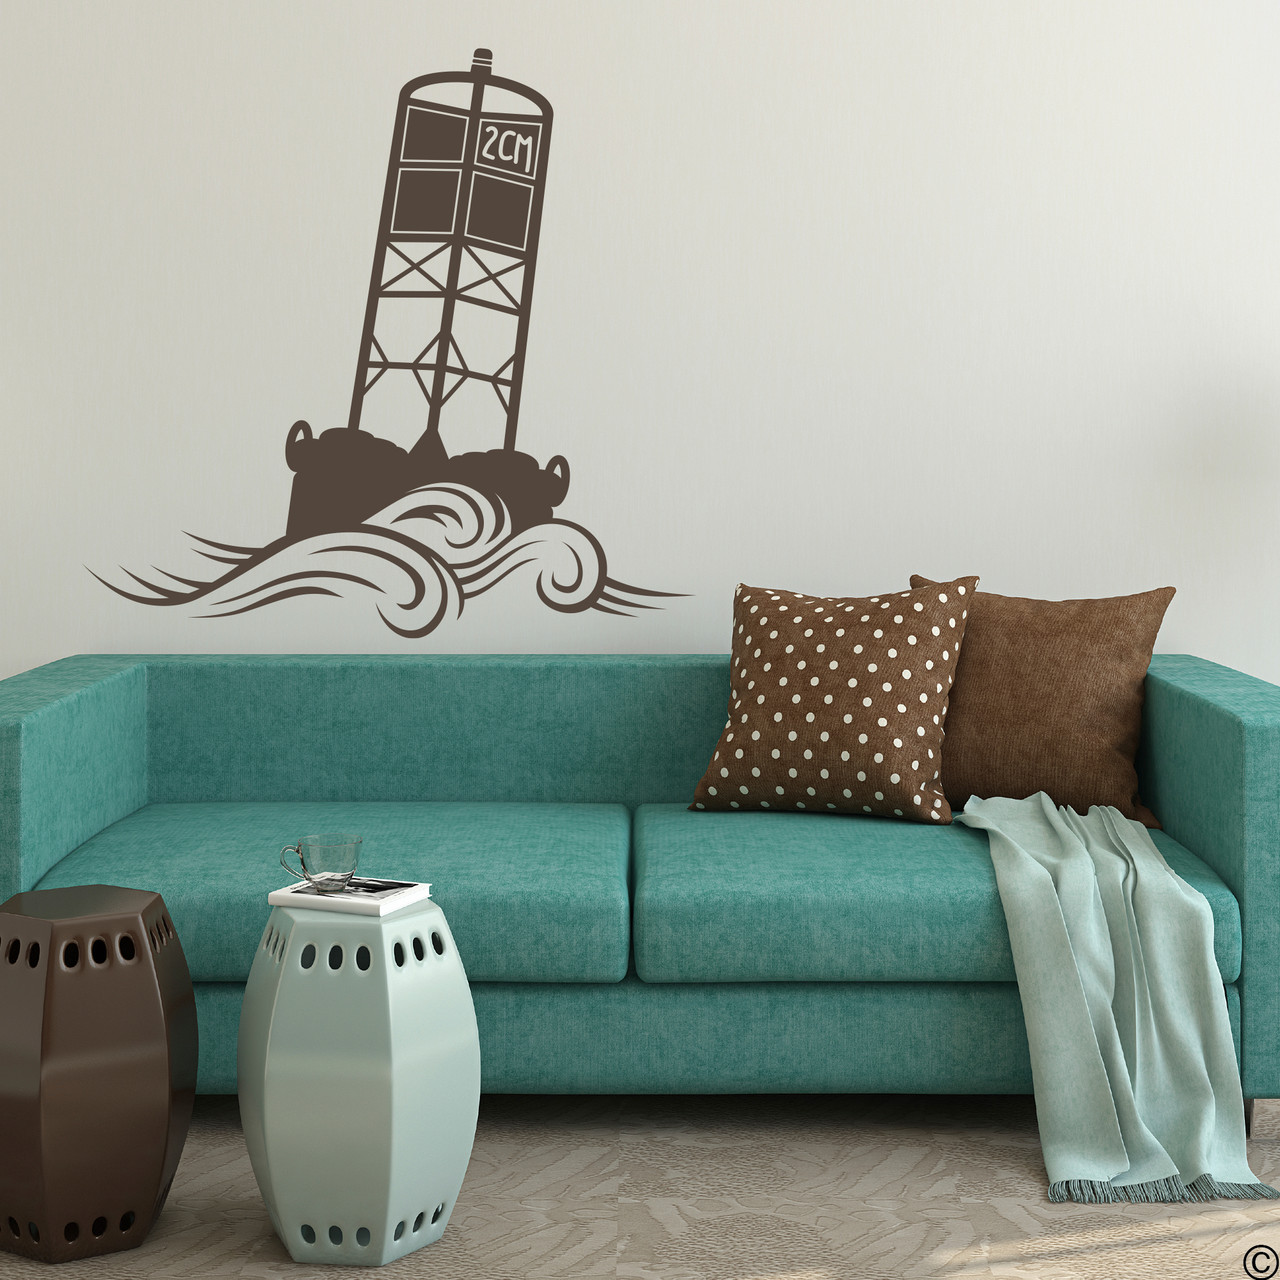 The Cape May Harbor 2CM Buoy wall decal in brown.